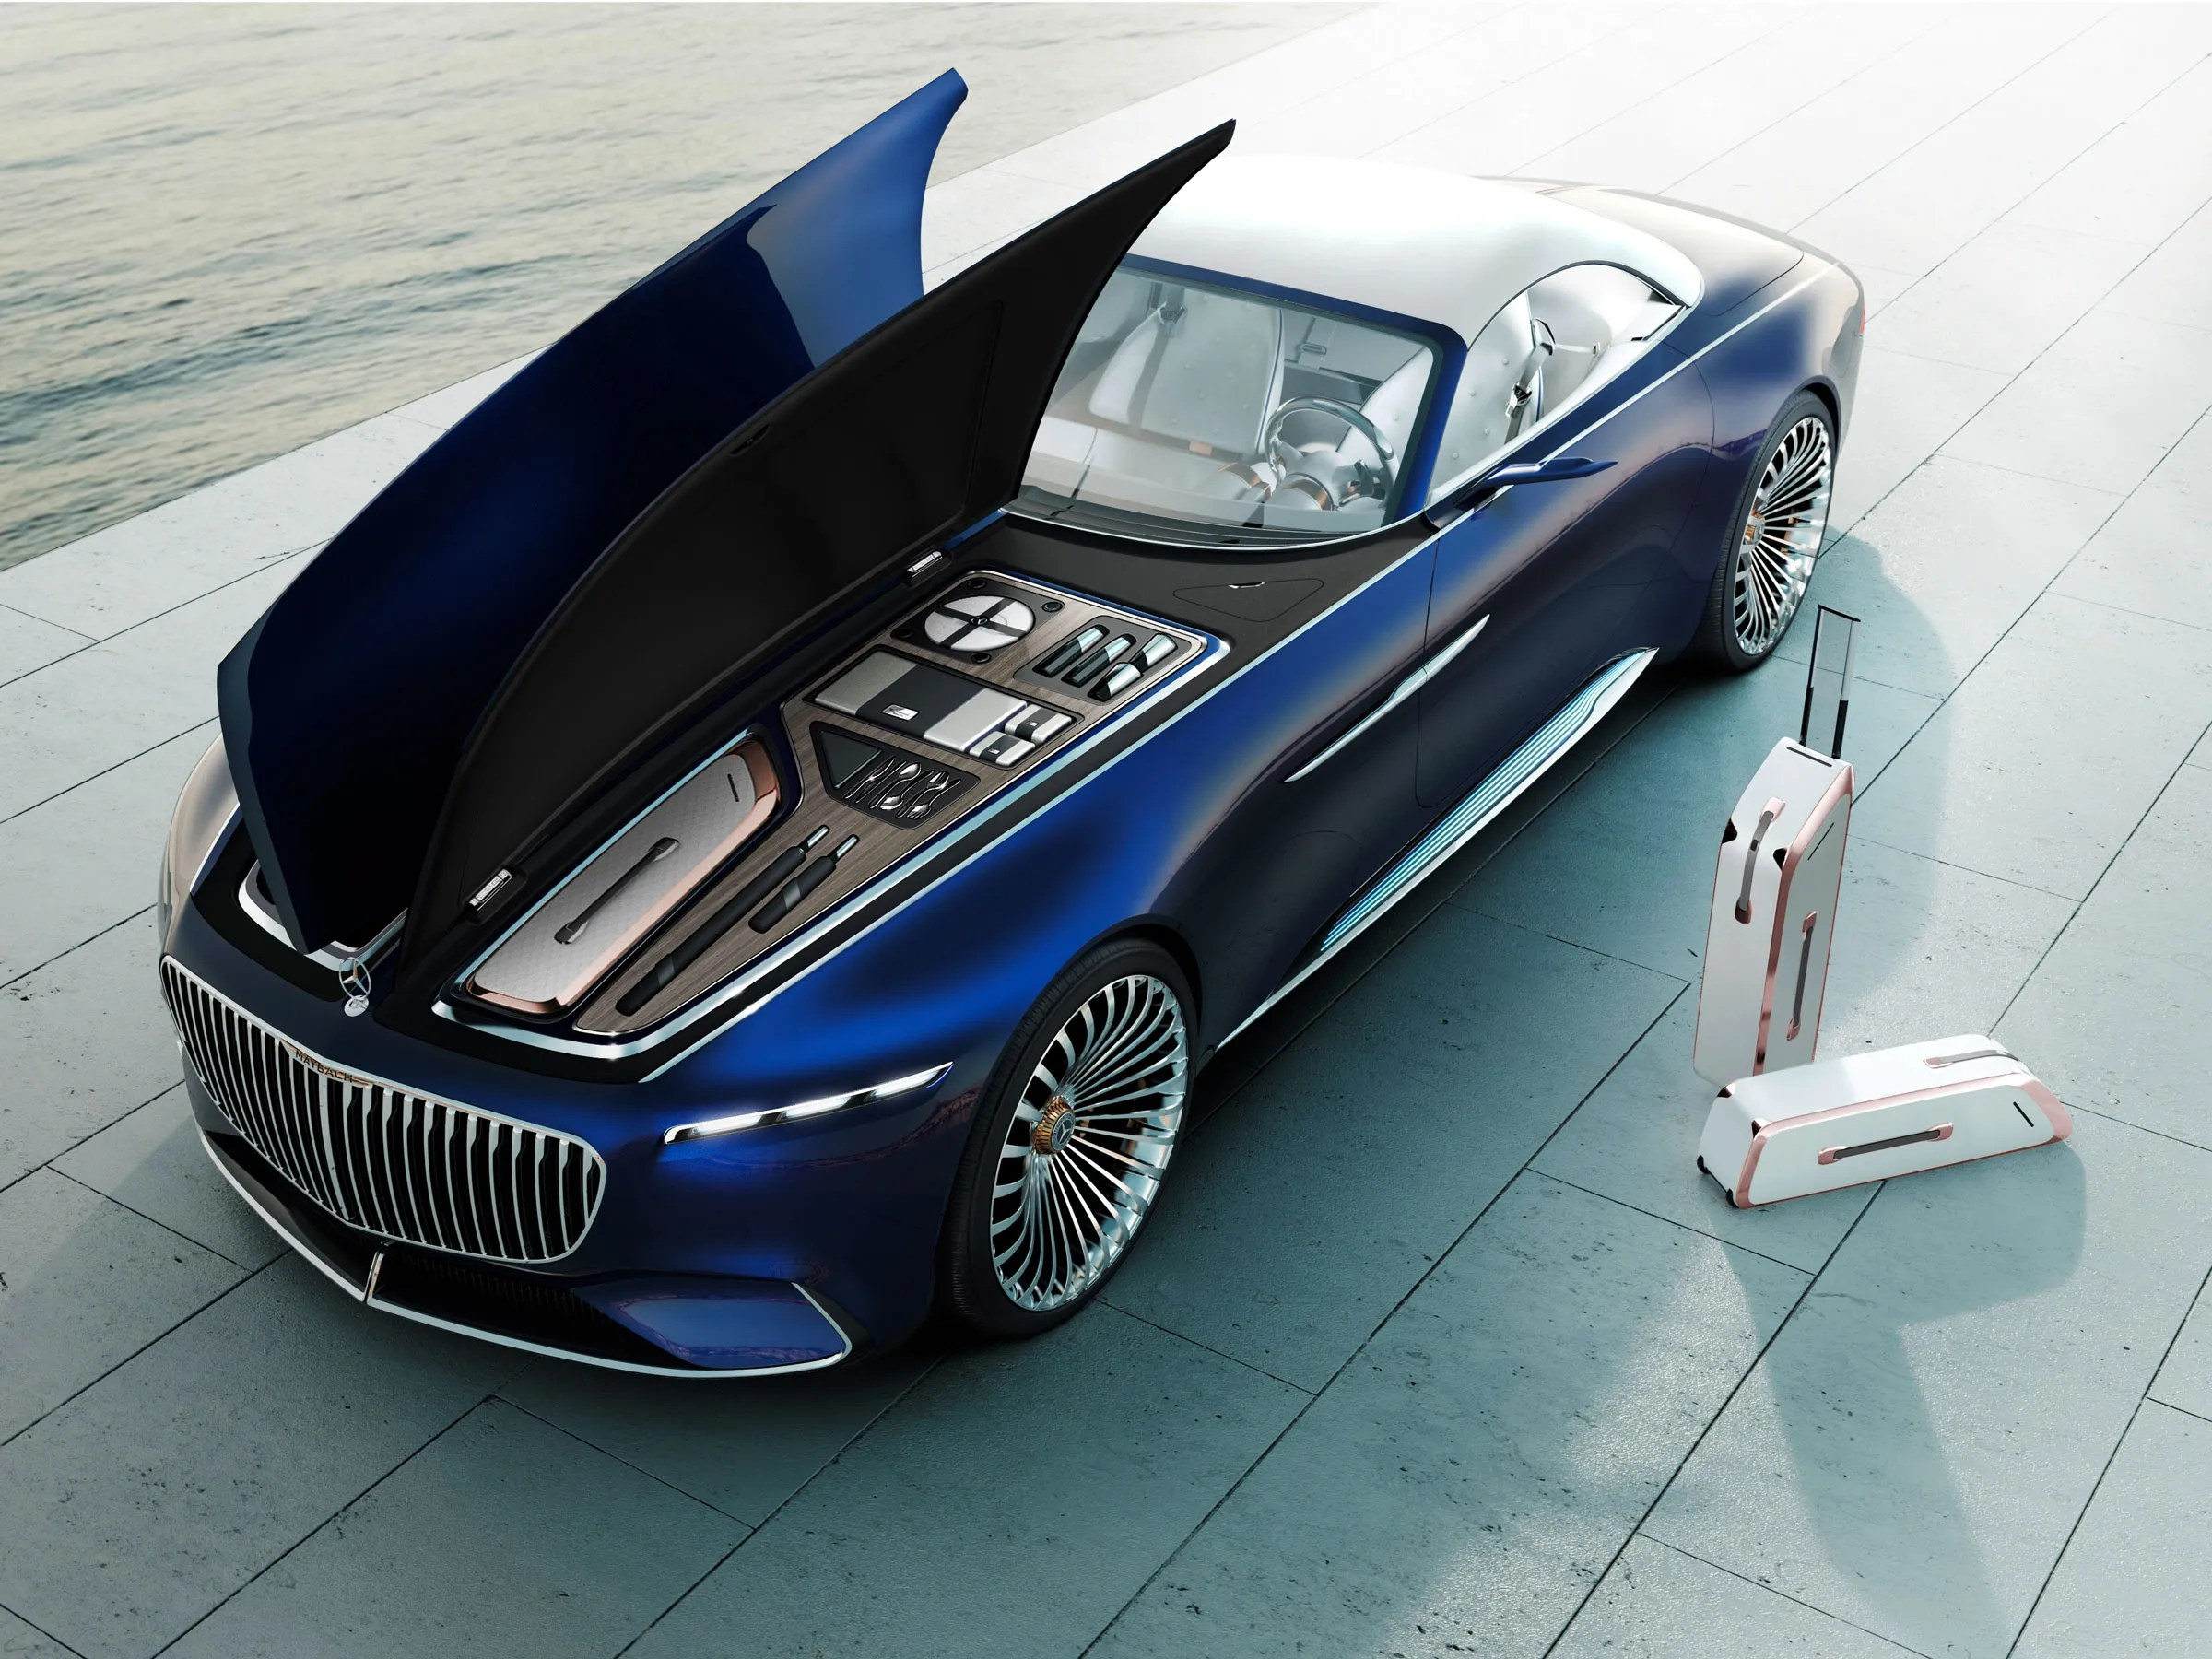 The Vision Mercedes Maybach 6 Cabriolet Rejects the Pod Based     Mercedes Benz